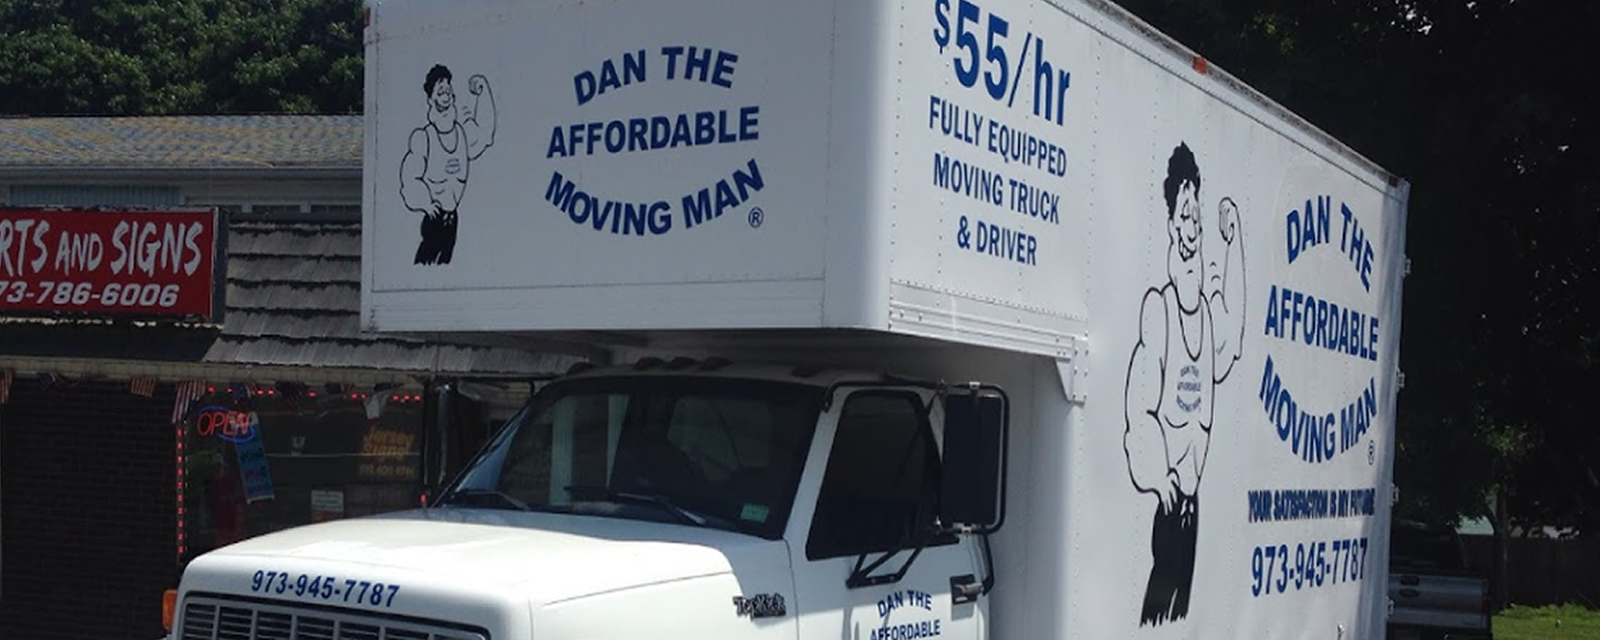 dan vernay moving